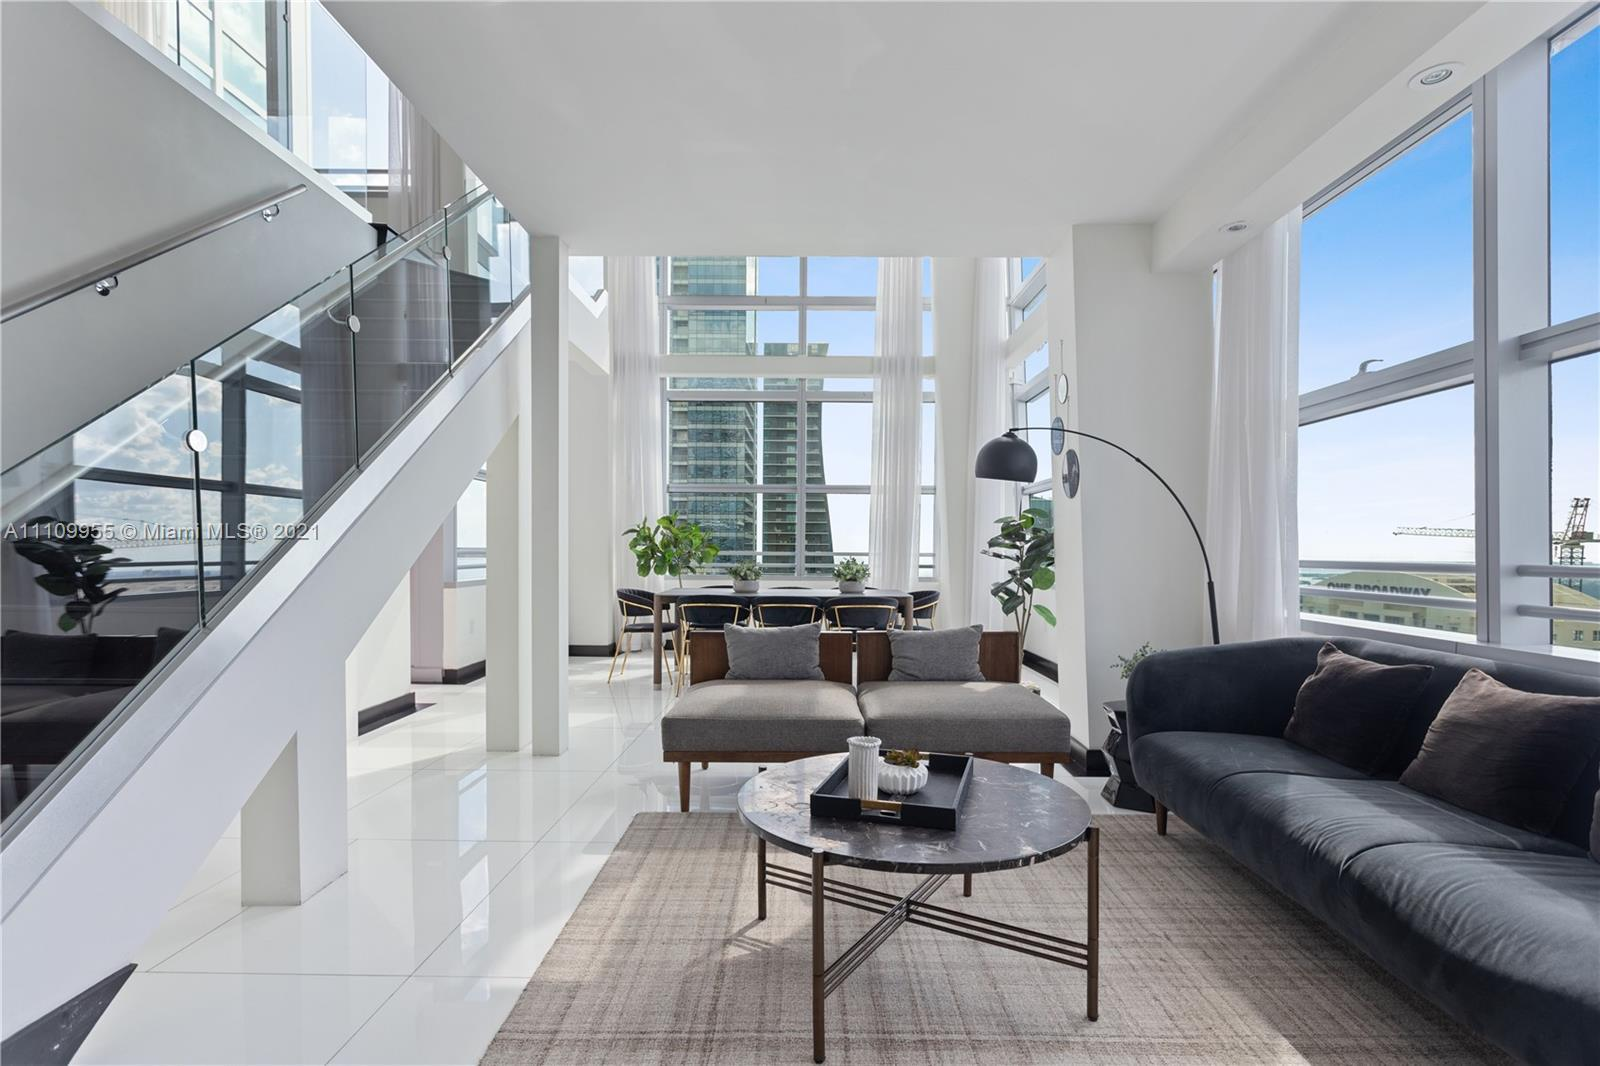 Air B&B approved! Income producing Penthouse. Daily rentals allowed. Two-story corner Ph in one of B